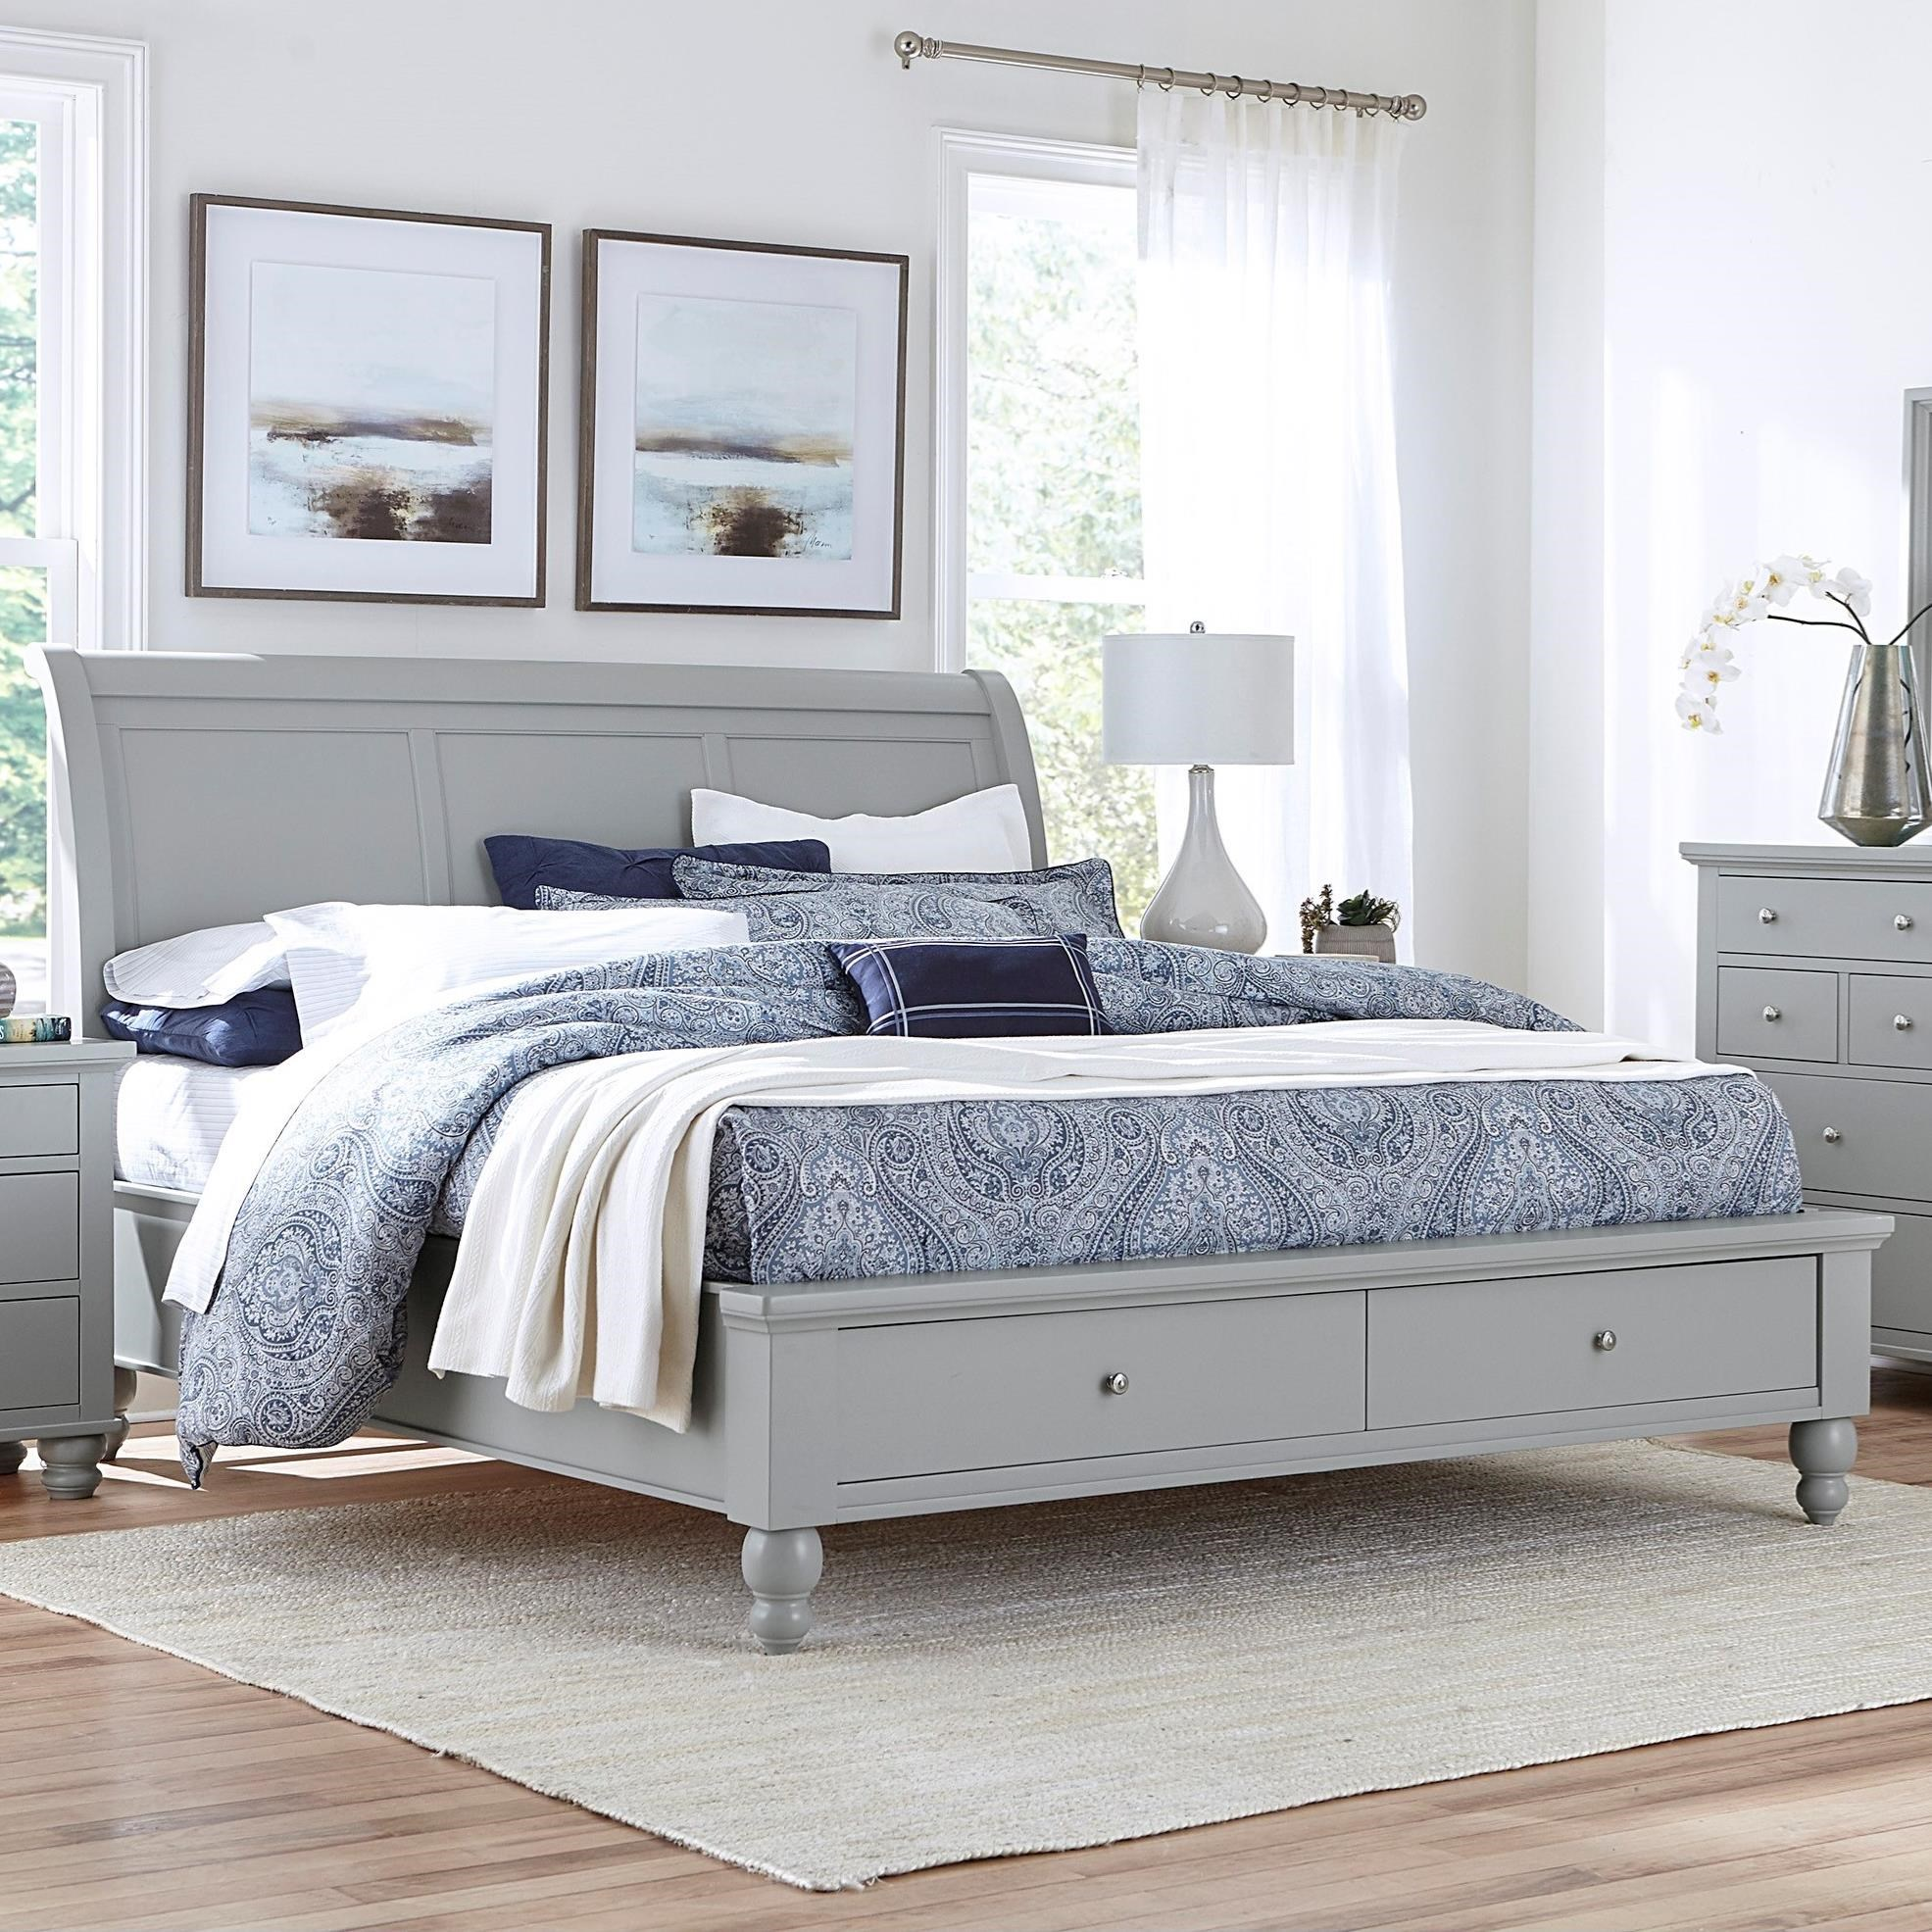 Cambridge Queen Sleigh Bed With Storage Drawers by Aspenhome at Walker's Furniture